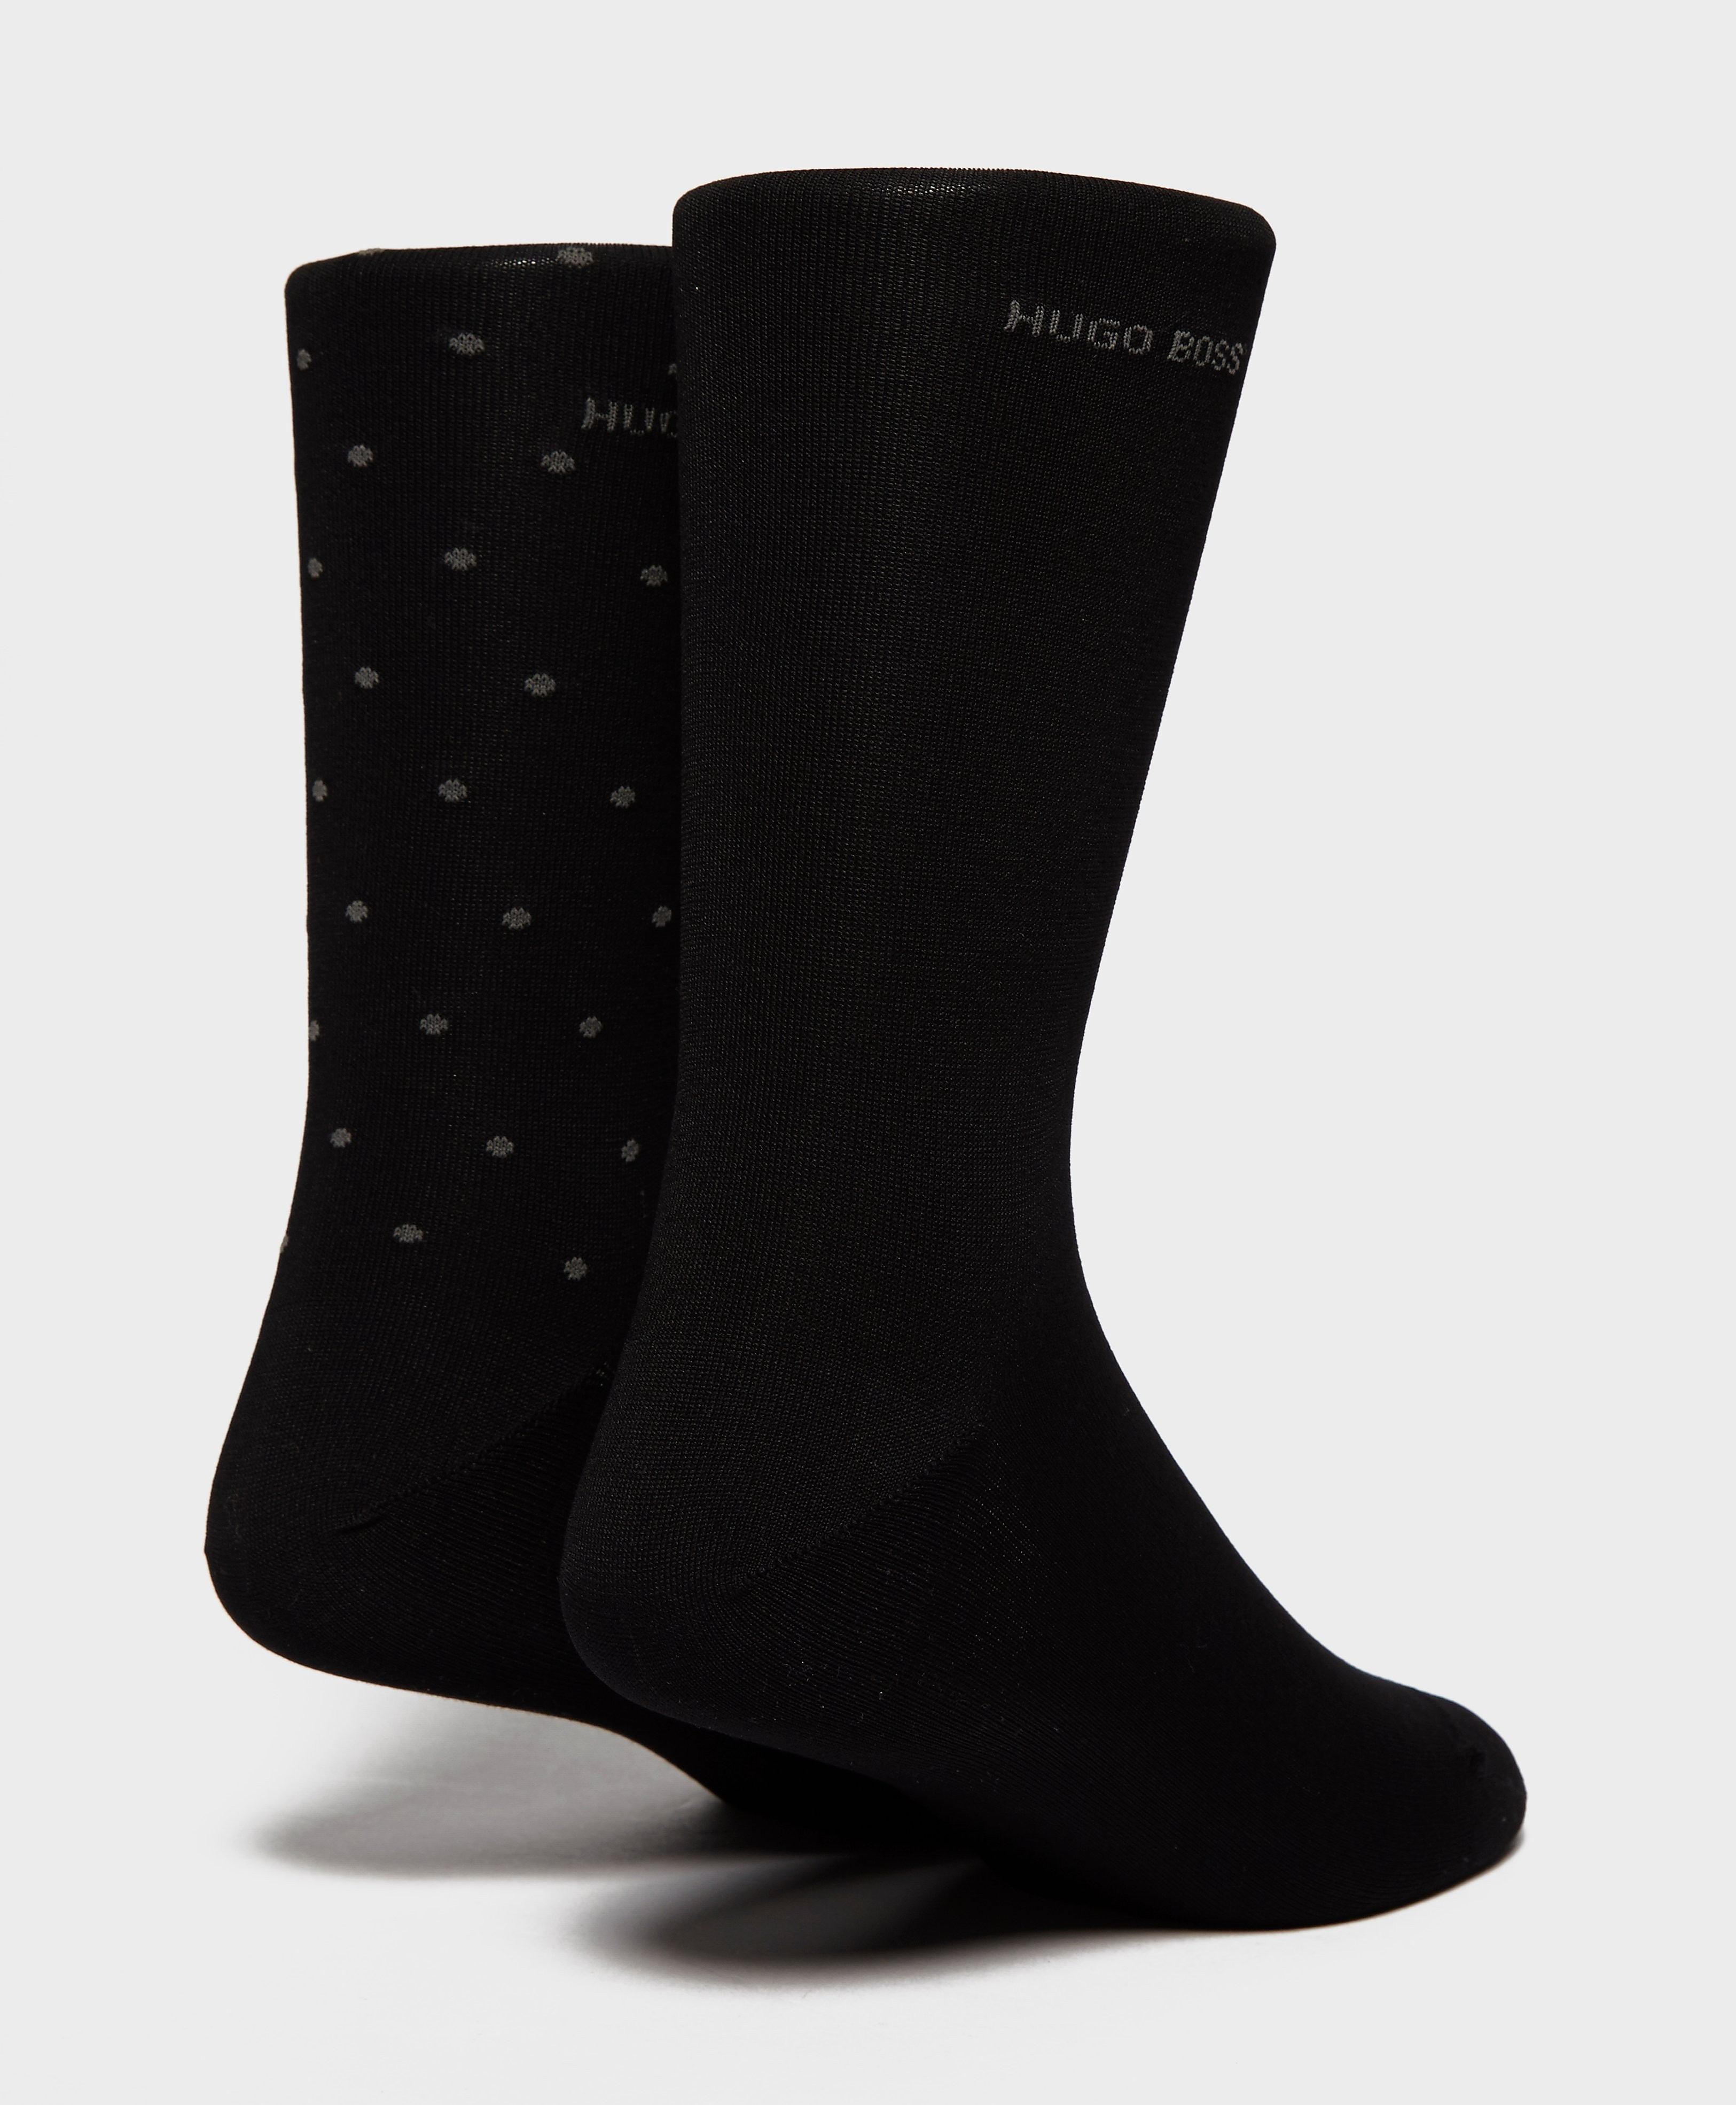 BOSS 2 Pack Polka Dot Plain Socks